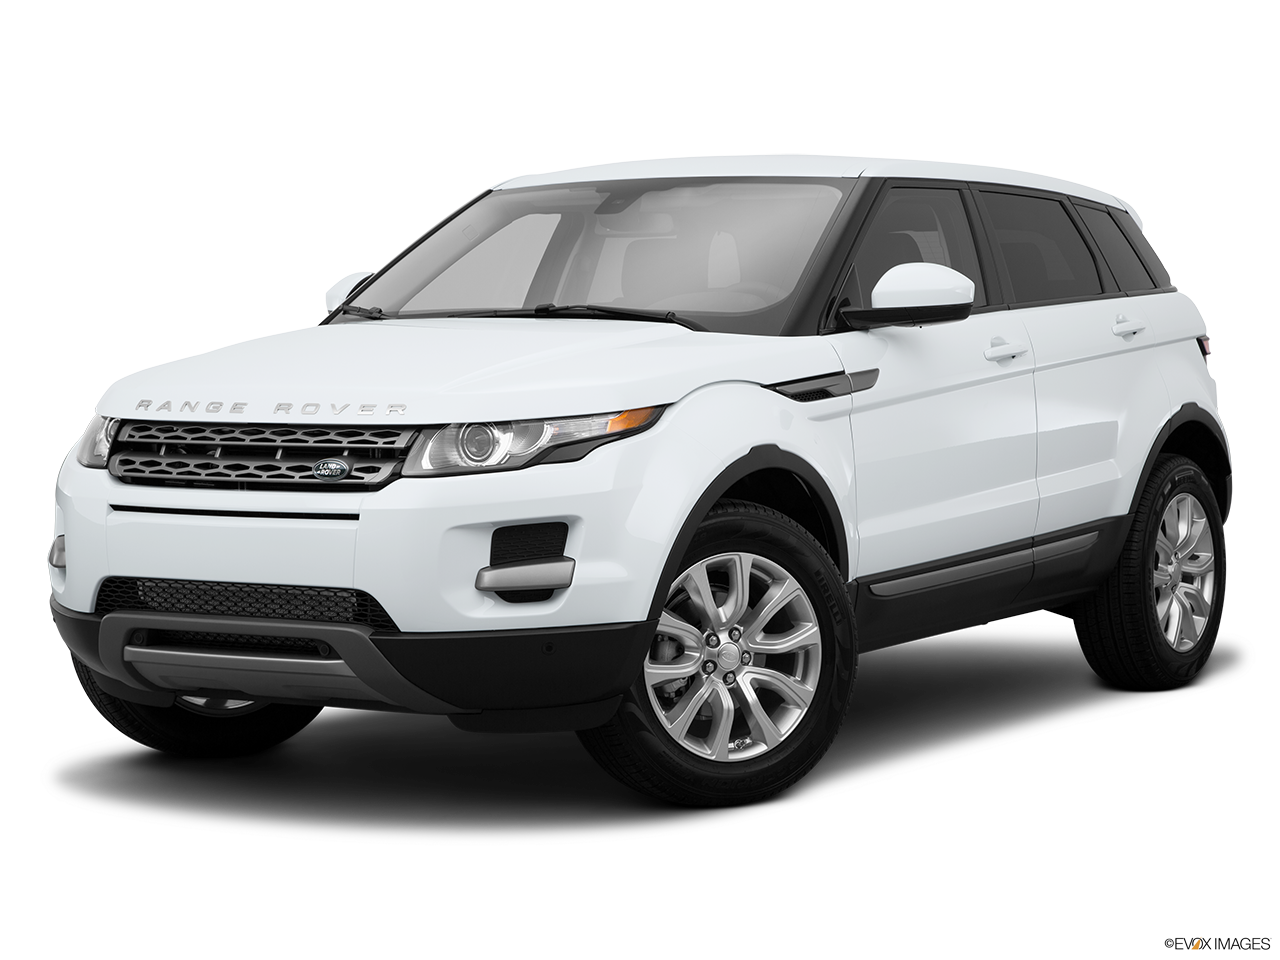 Land Rover Marin >> Land Rover Png Image Purepng Free Transparent Cc0 Png Image Library